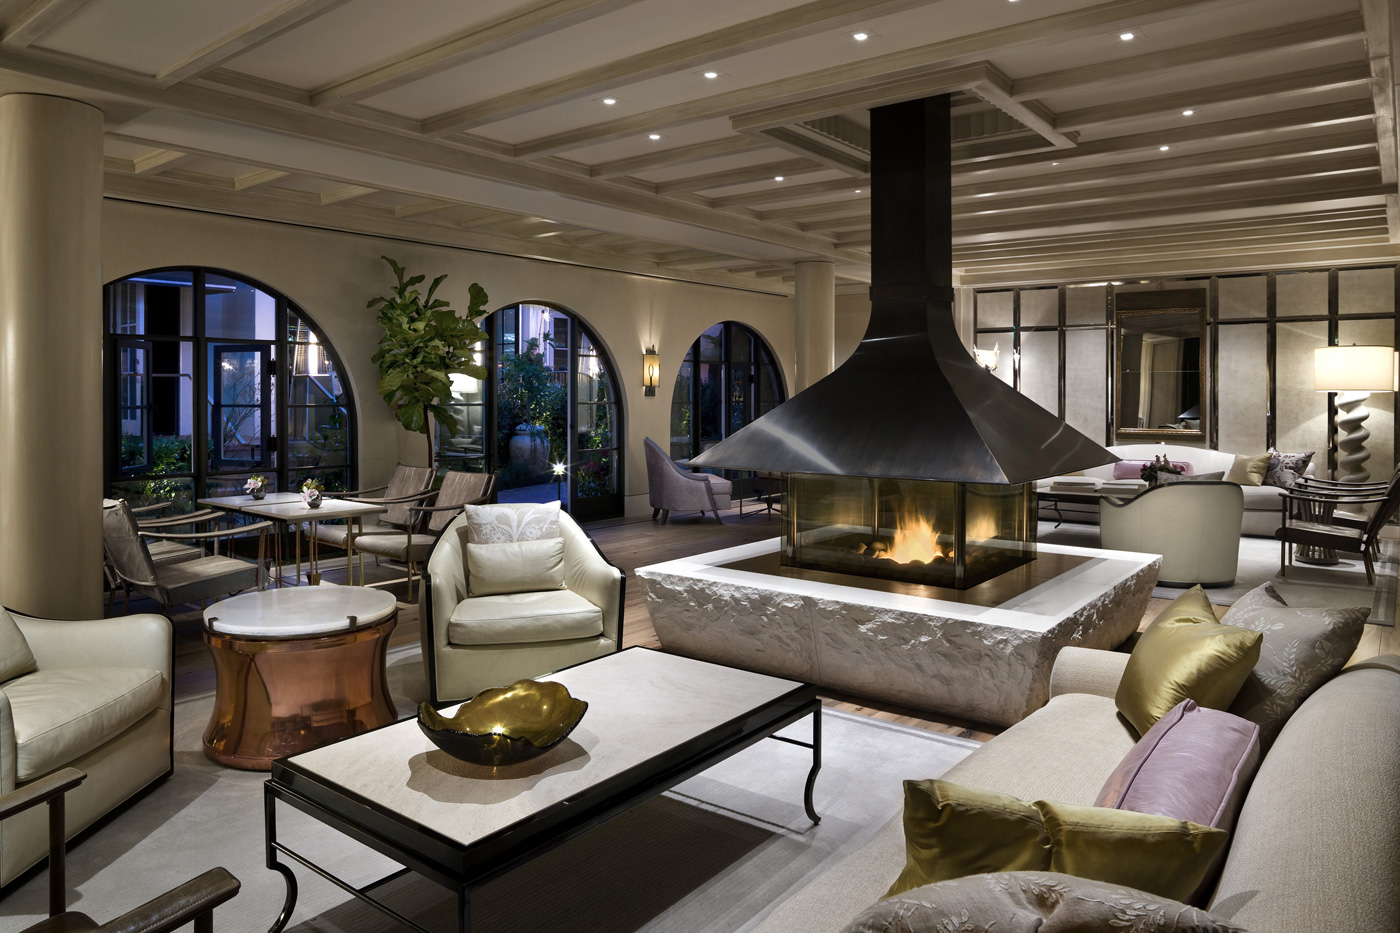 3 Hotel Bel Air Lobby Lounge - Michael Weber